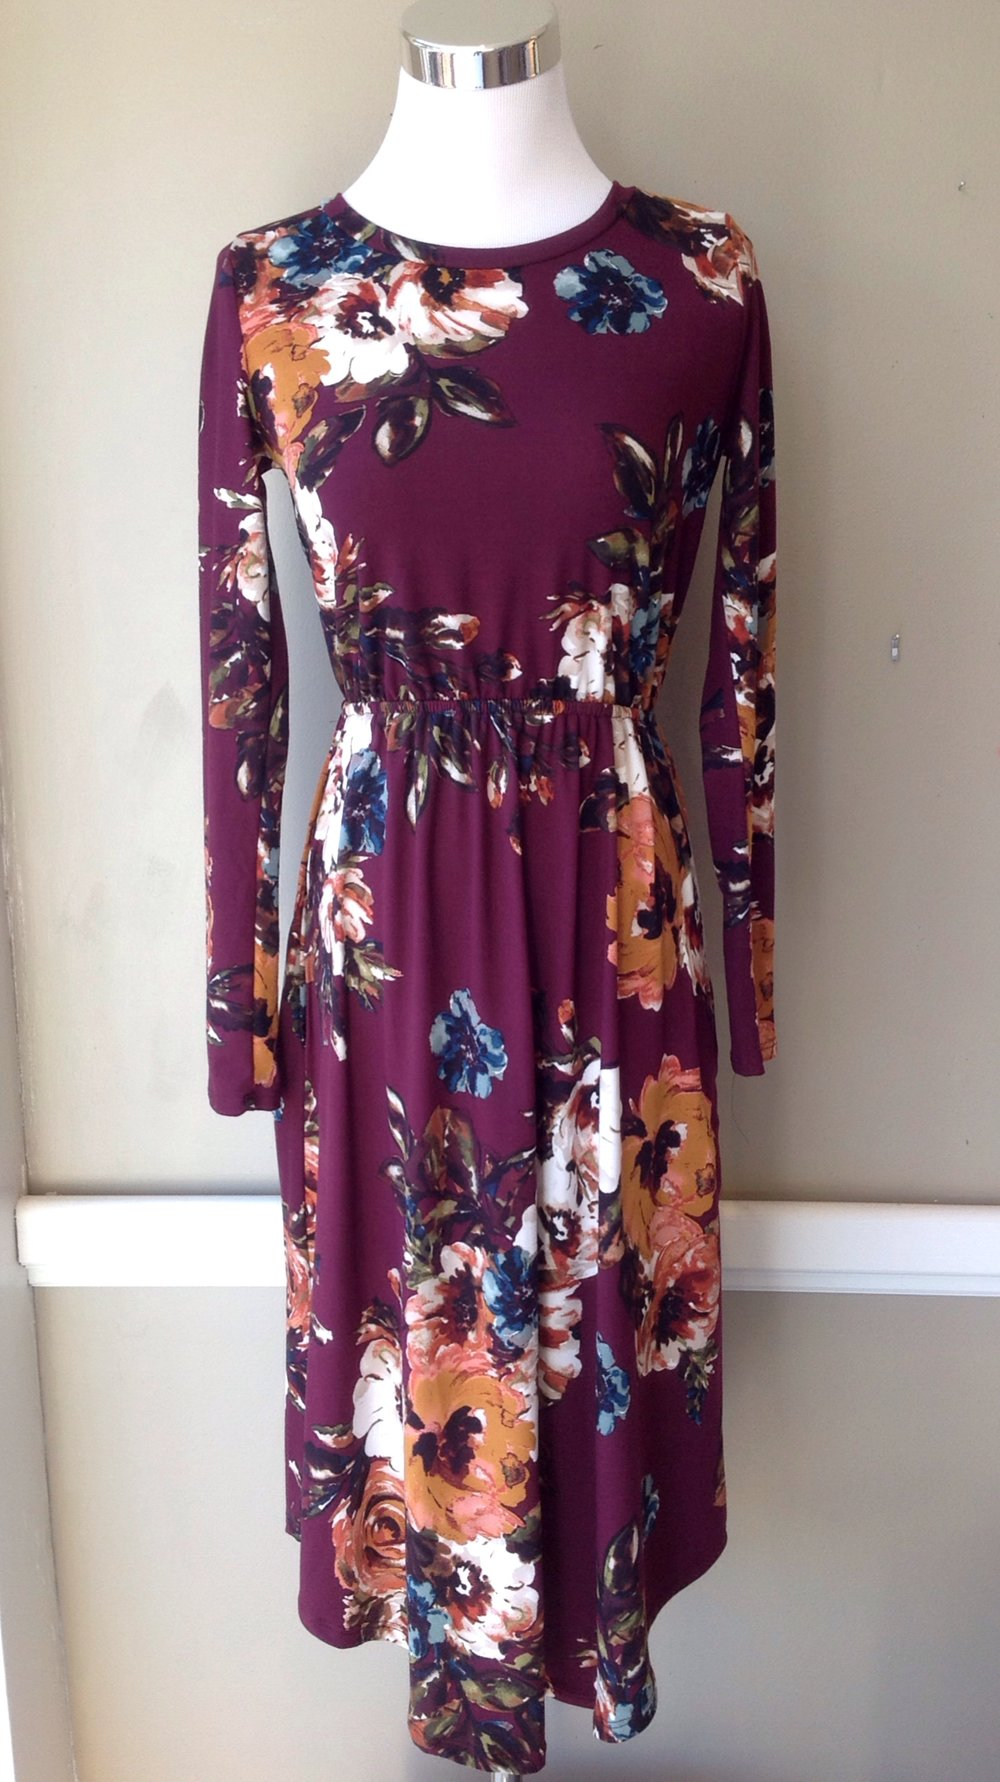 Floral knit midi dress with long sleeves, side seam pockets and rounded hem, $38. Available in wine/multi floral, black/multi floral, black with brown/red floral, and olive with taupe/wine floral.